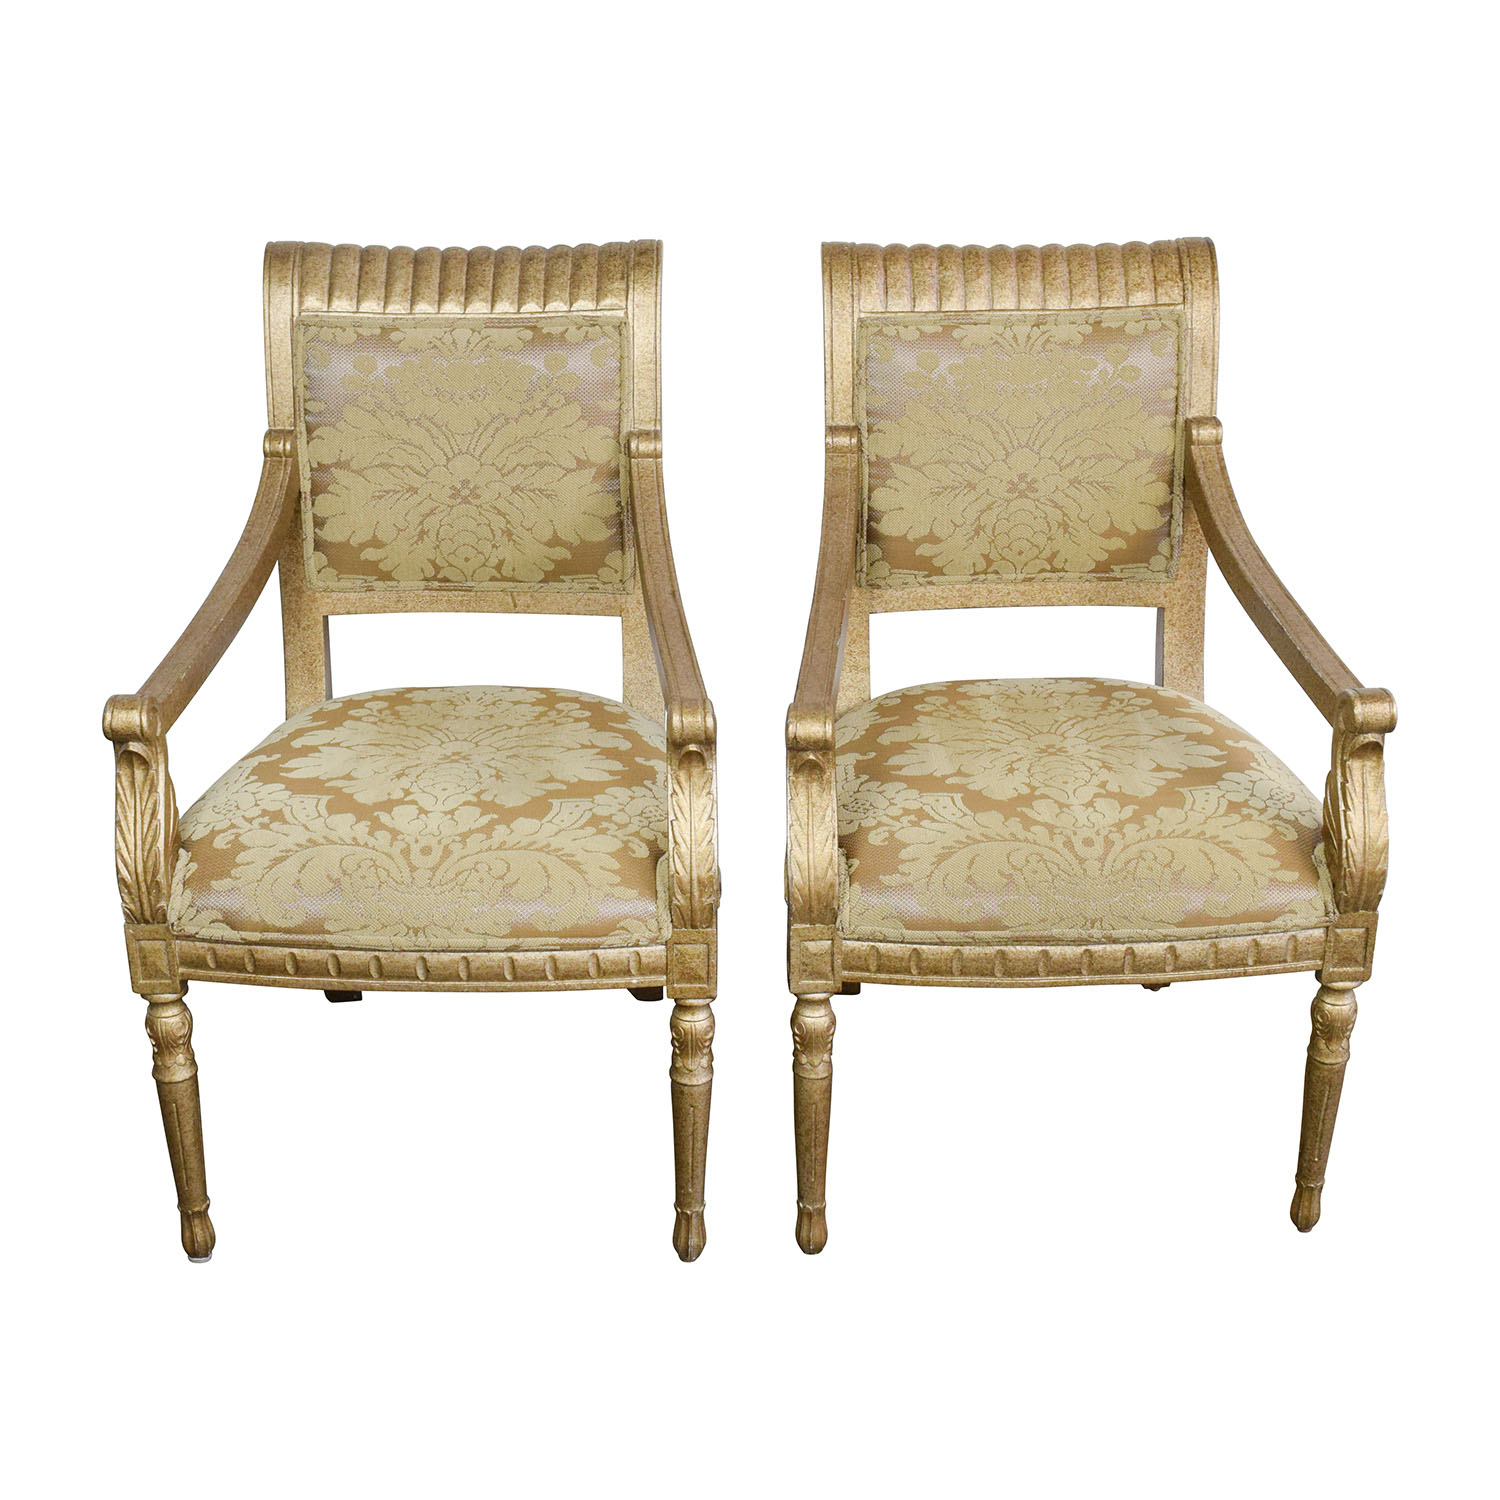 Accent Chairs Prices 80 Off Rustic Gold Upholstered Arm Accent Chairs Chairs